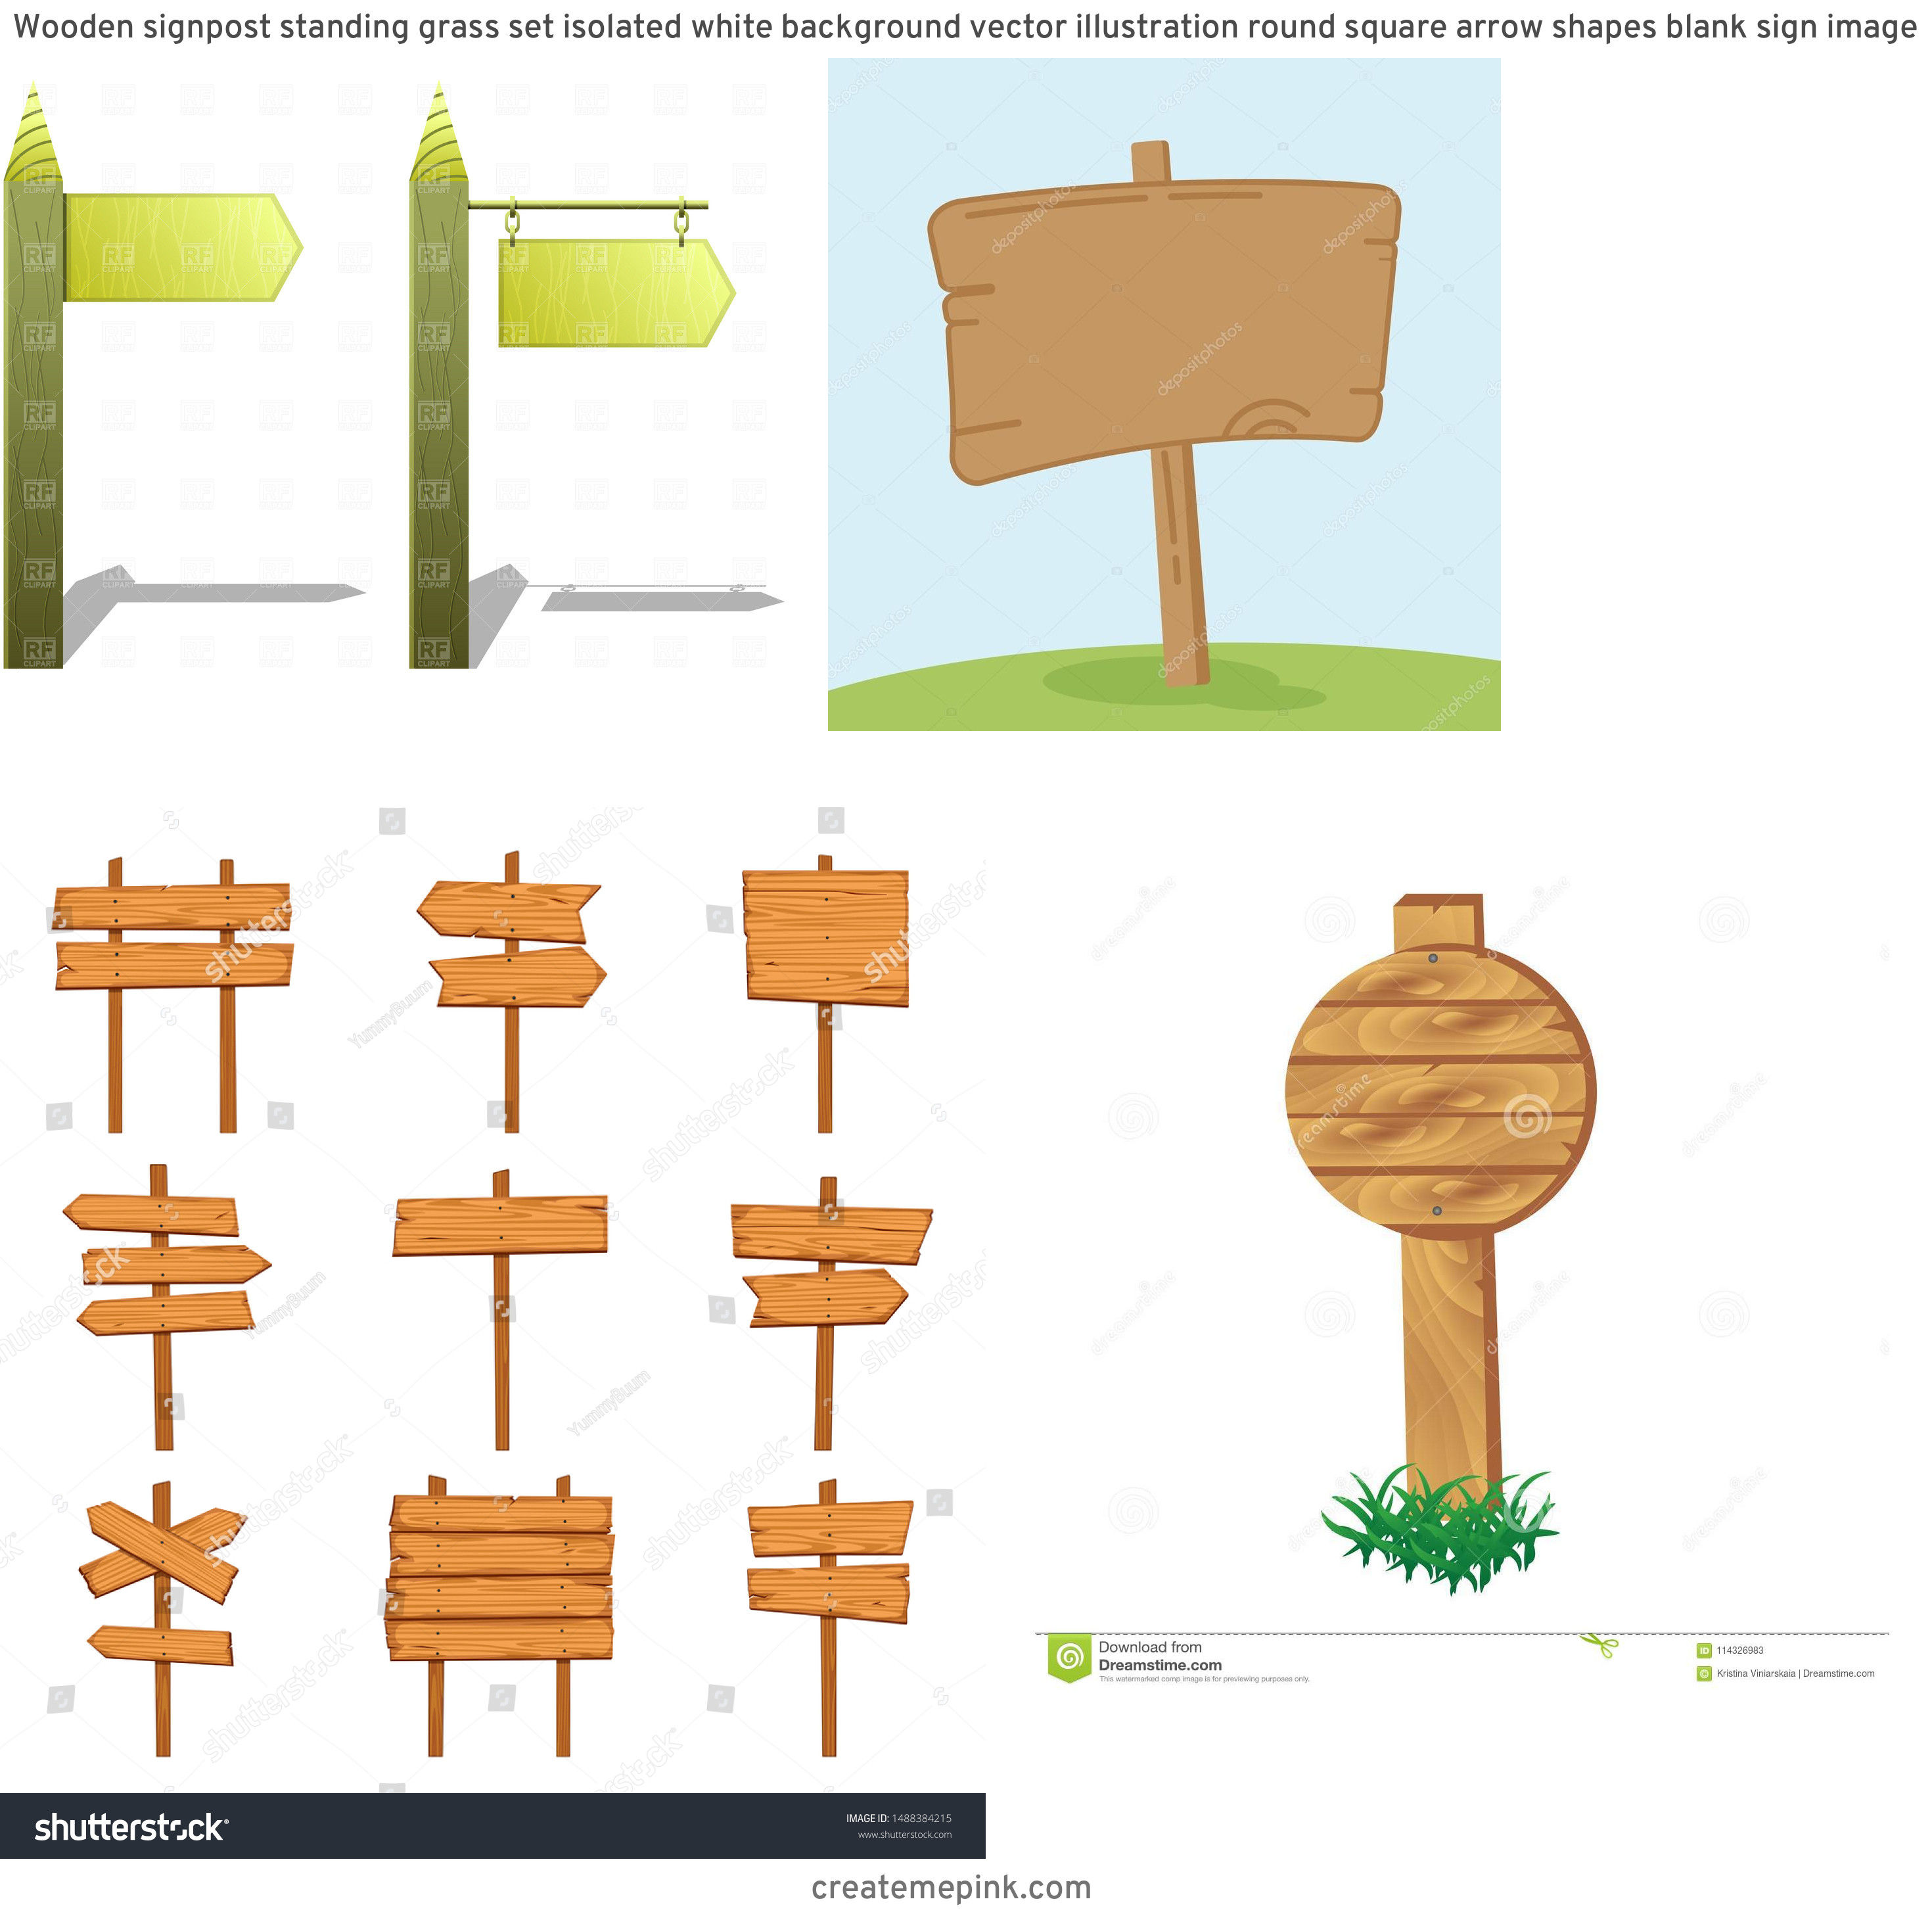 Wooden Sign Post Vector: Wooden Signpost Standing Grass Set Isolated White Background Vector Illustration Round Square Arrow Shapes Blank Sign Image